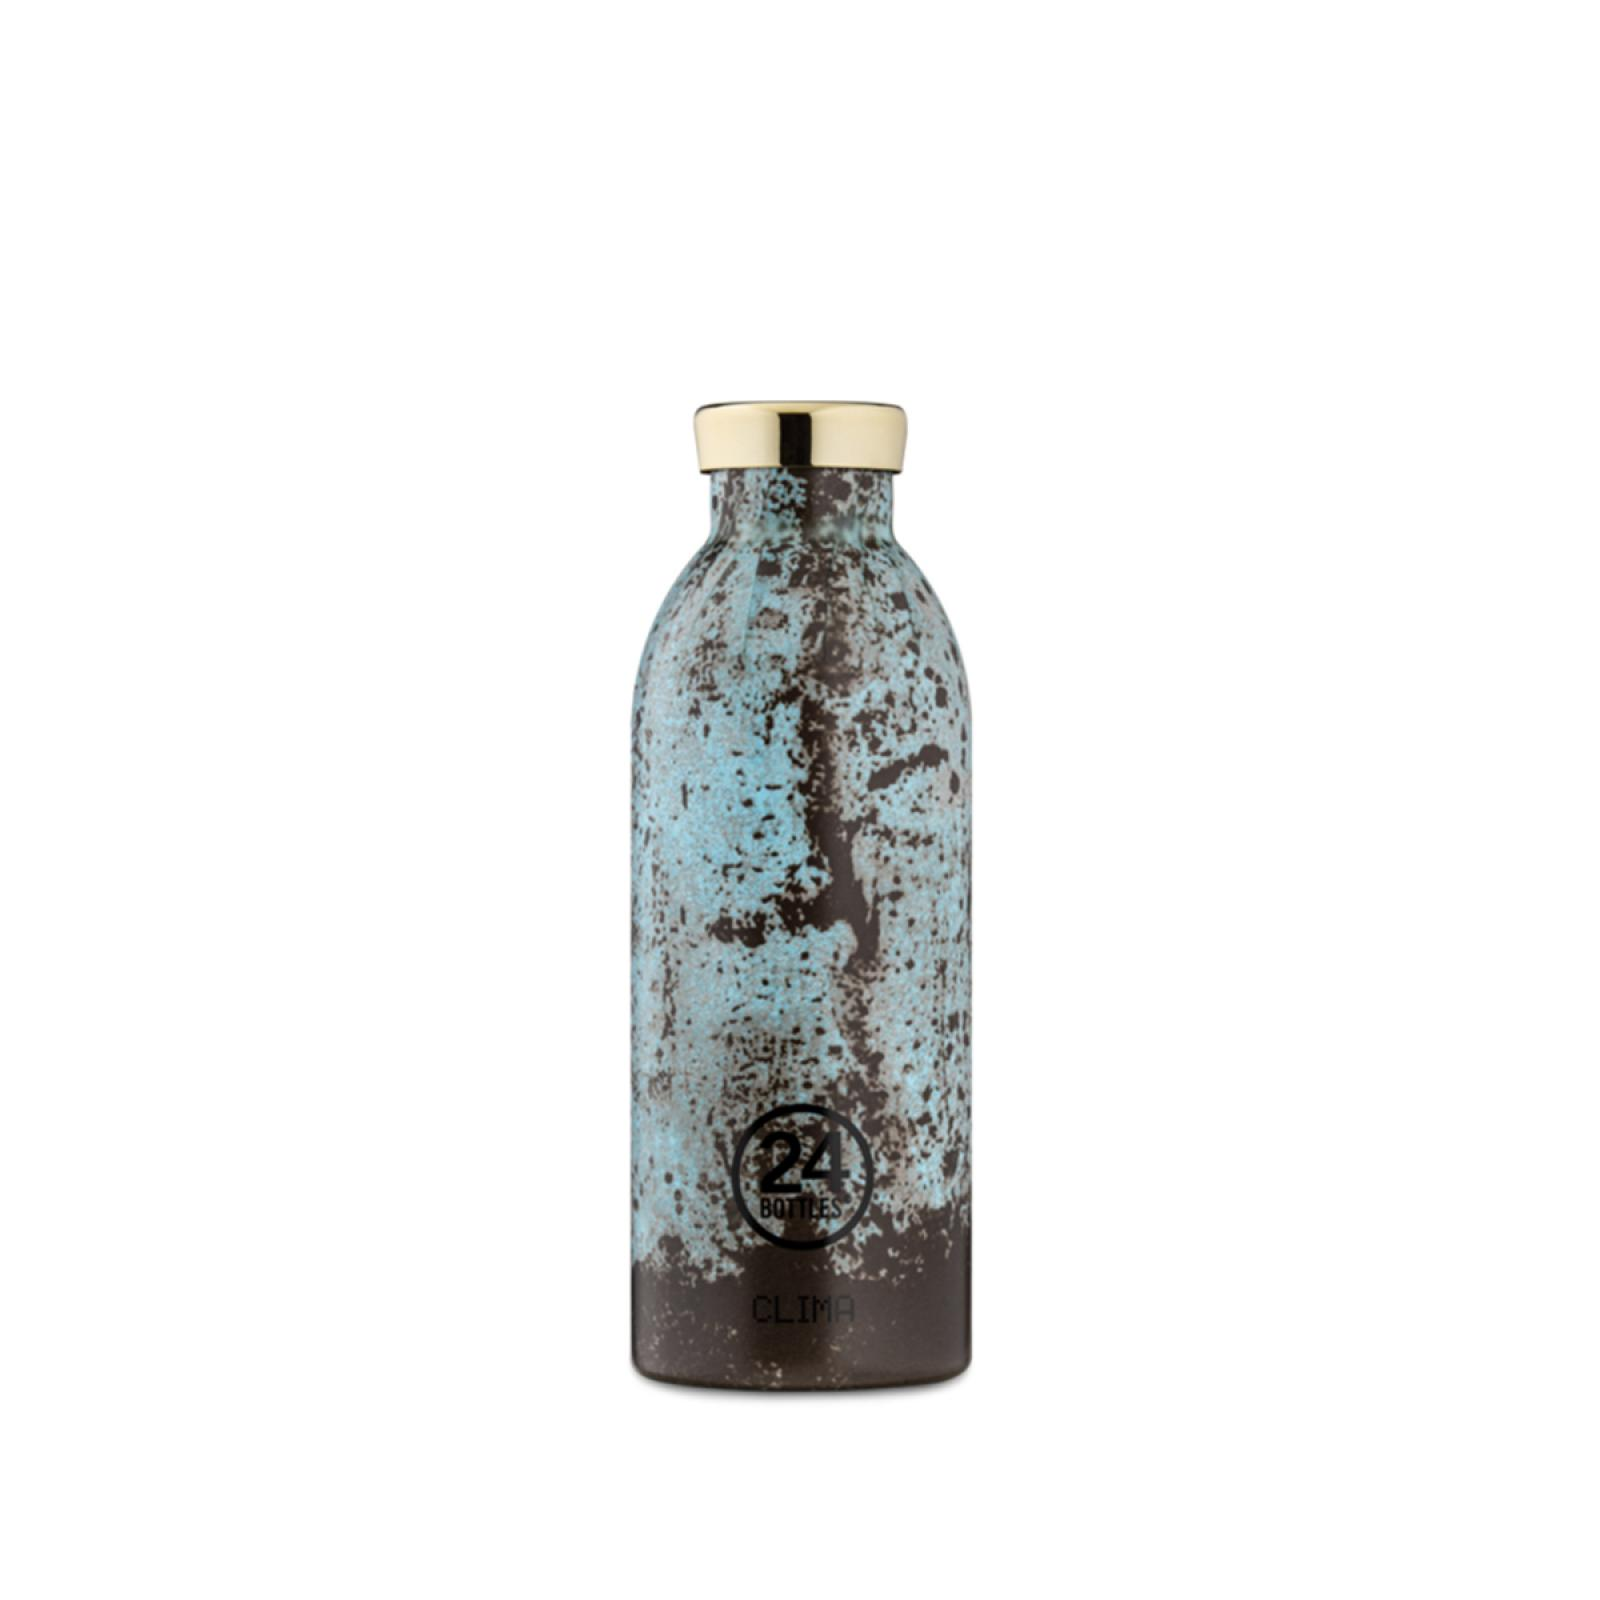 24BO Clima Bottle Riace 500 ml - 1